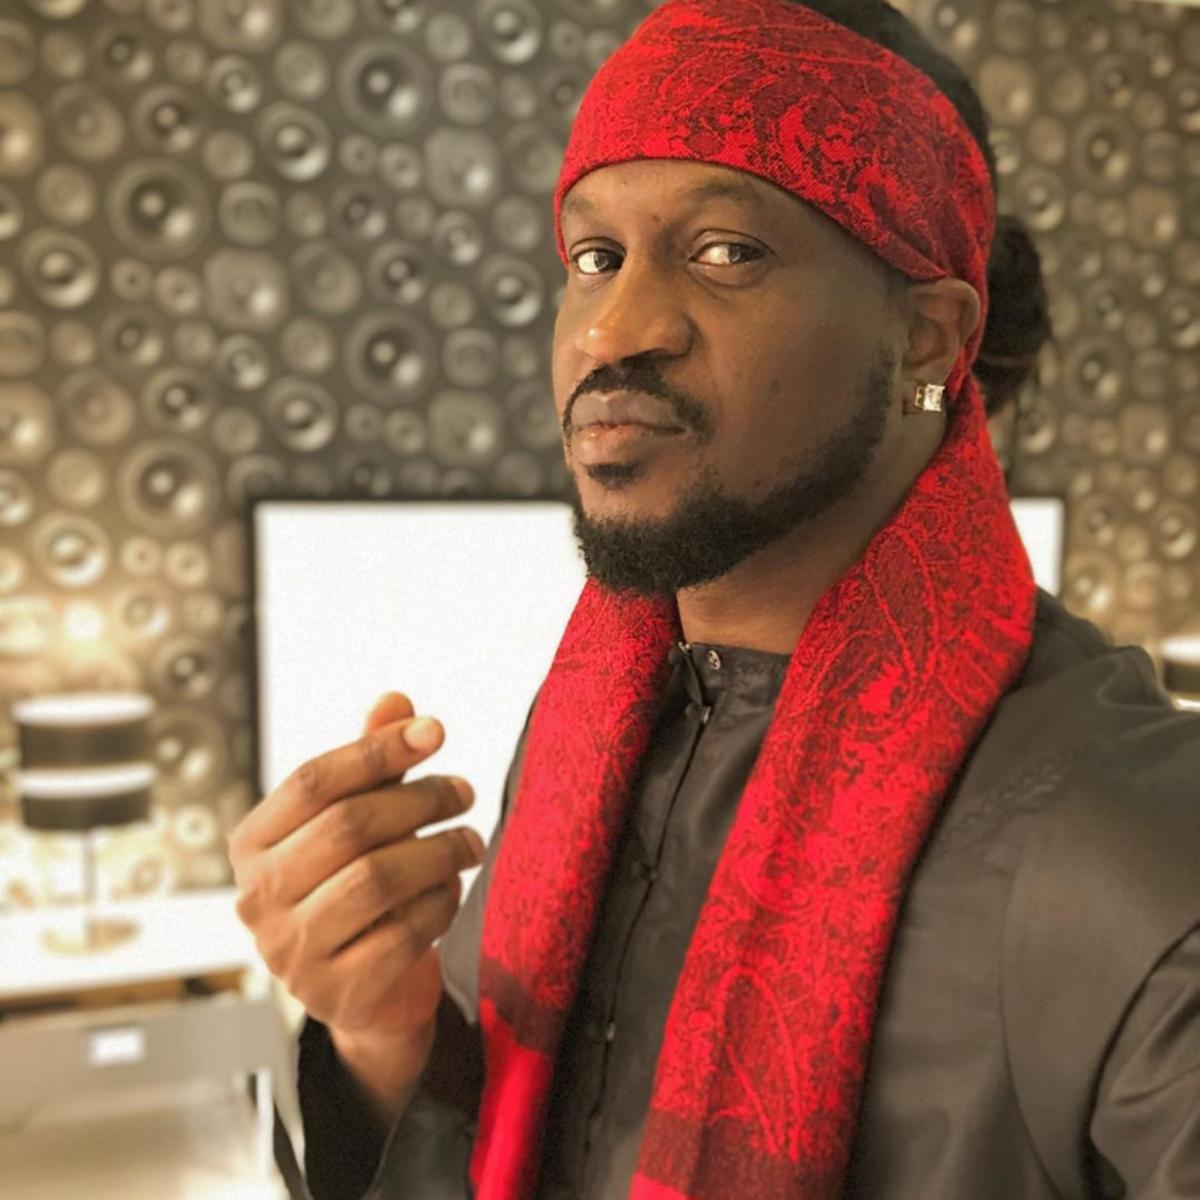 COVID-19 Distracting Paul Okoye Mentally And Lyrically